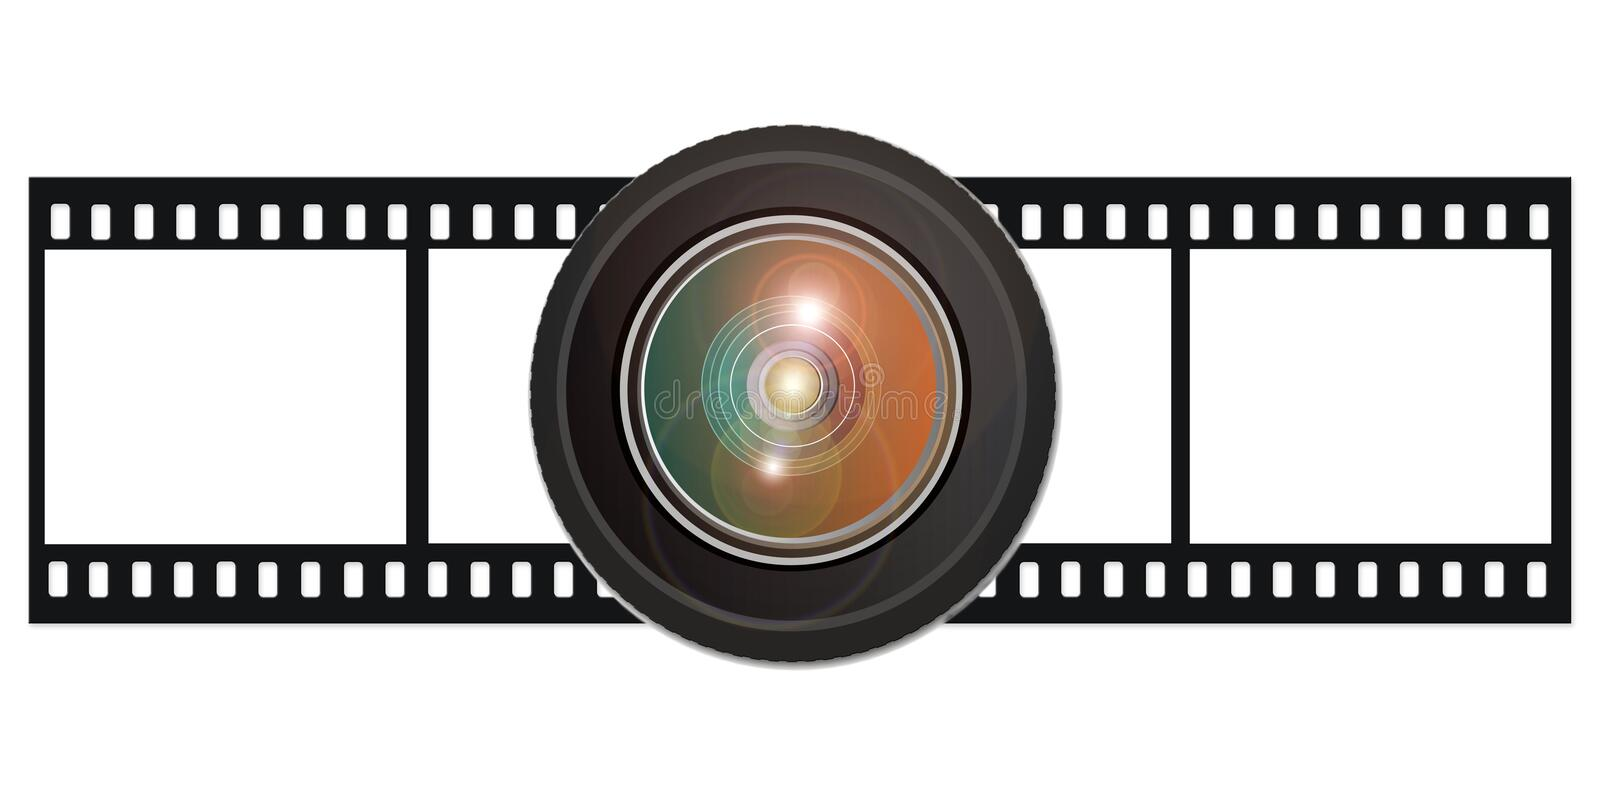 Download Film with lens stock illustration. Illustration of insight - 15316927